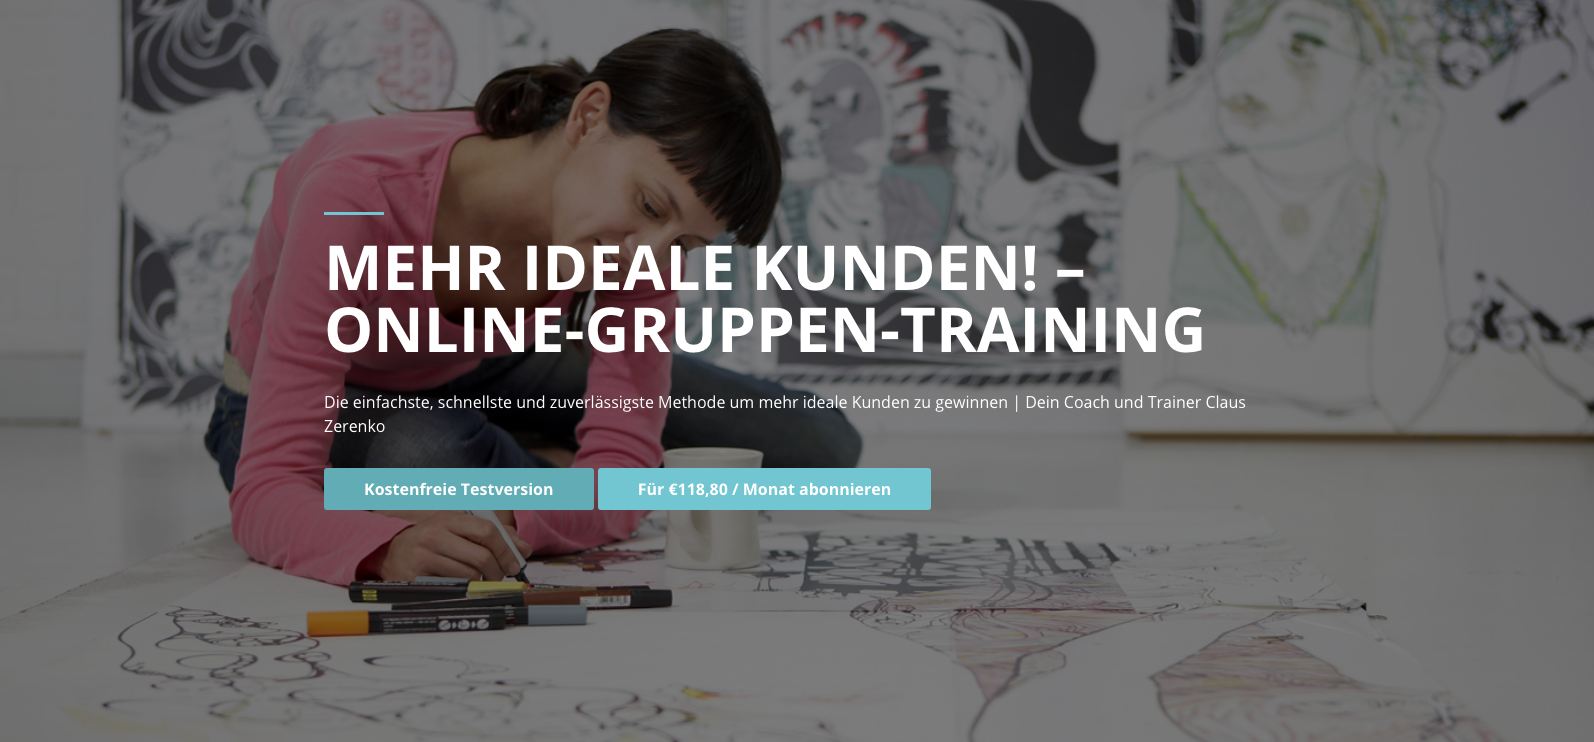 Online-Gruppen-Training